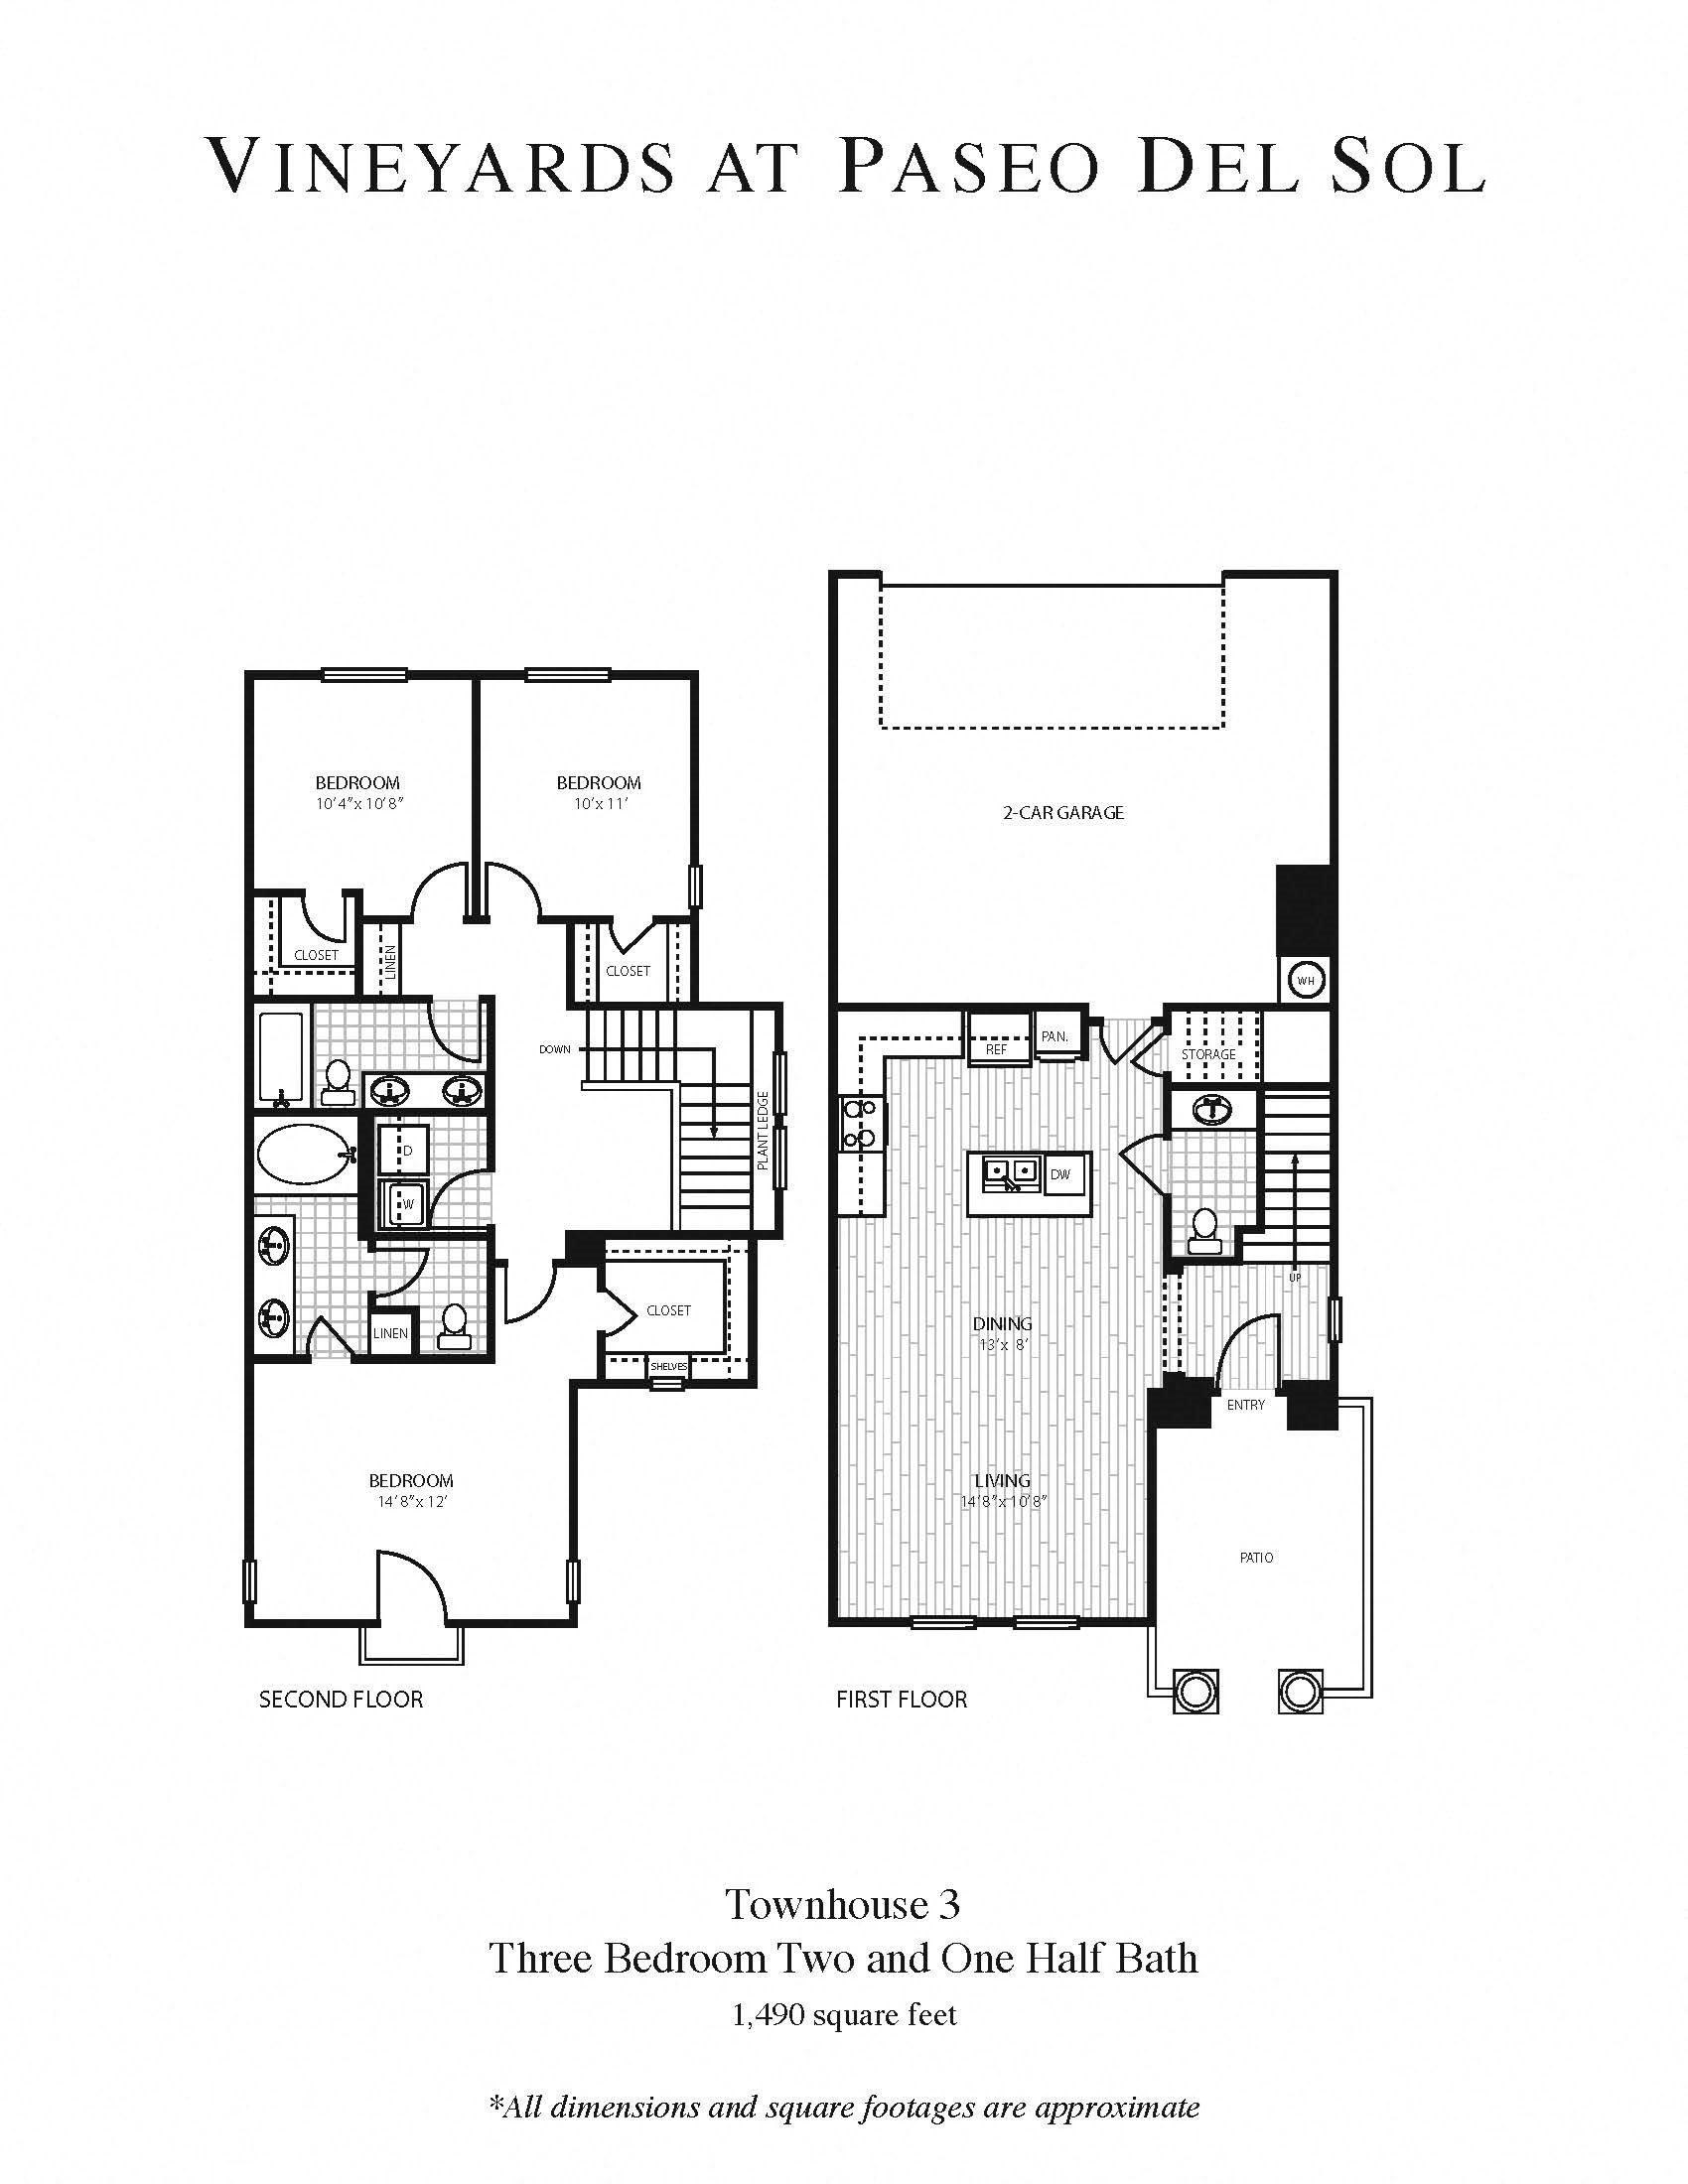 3b/2b - Townhouse Floor Plan 9